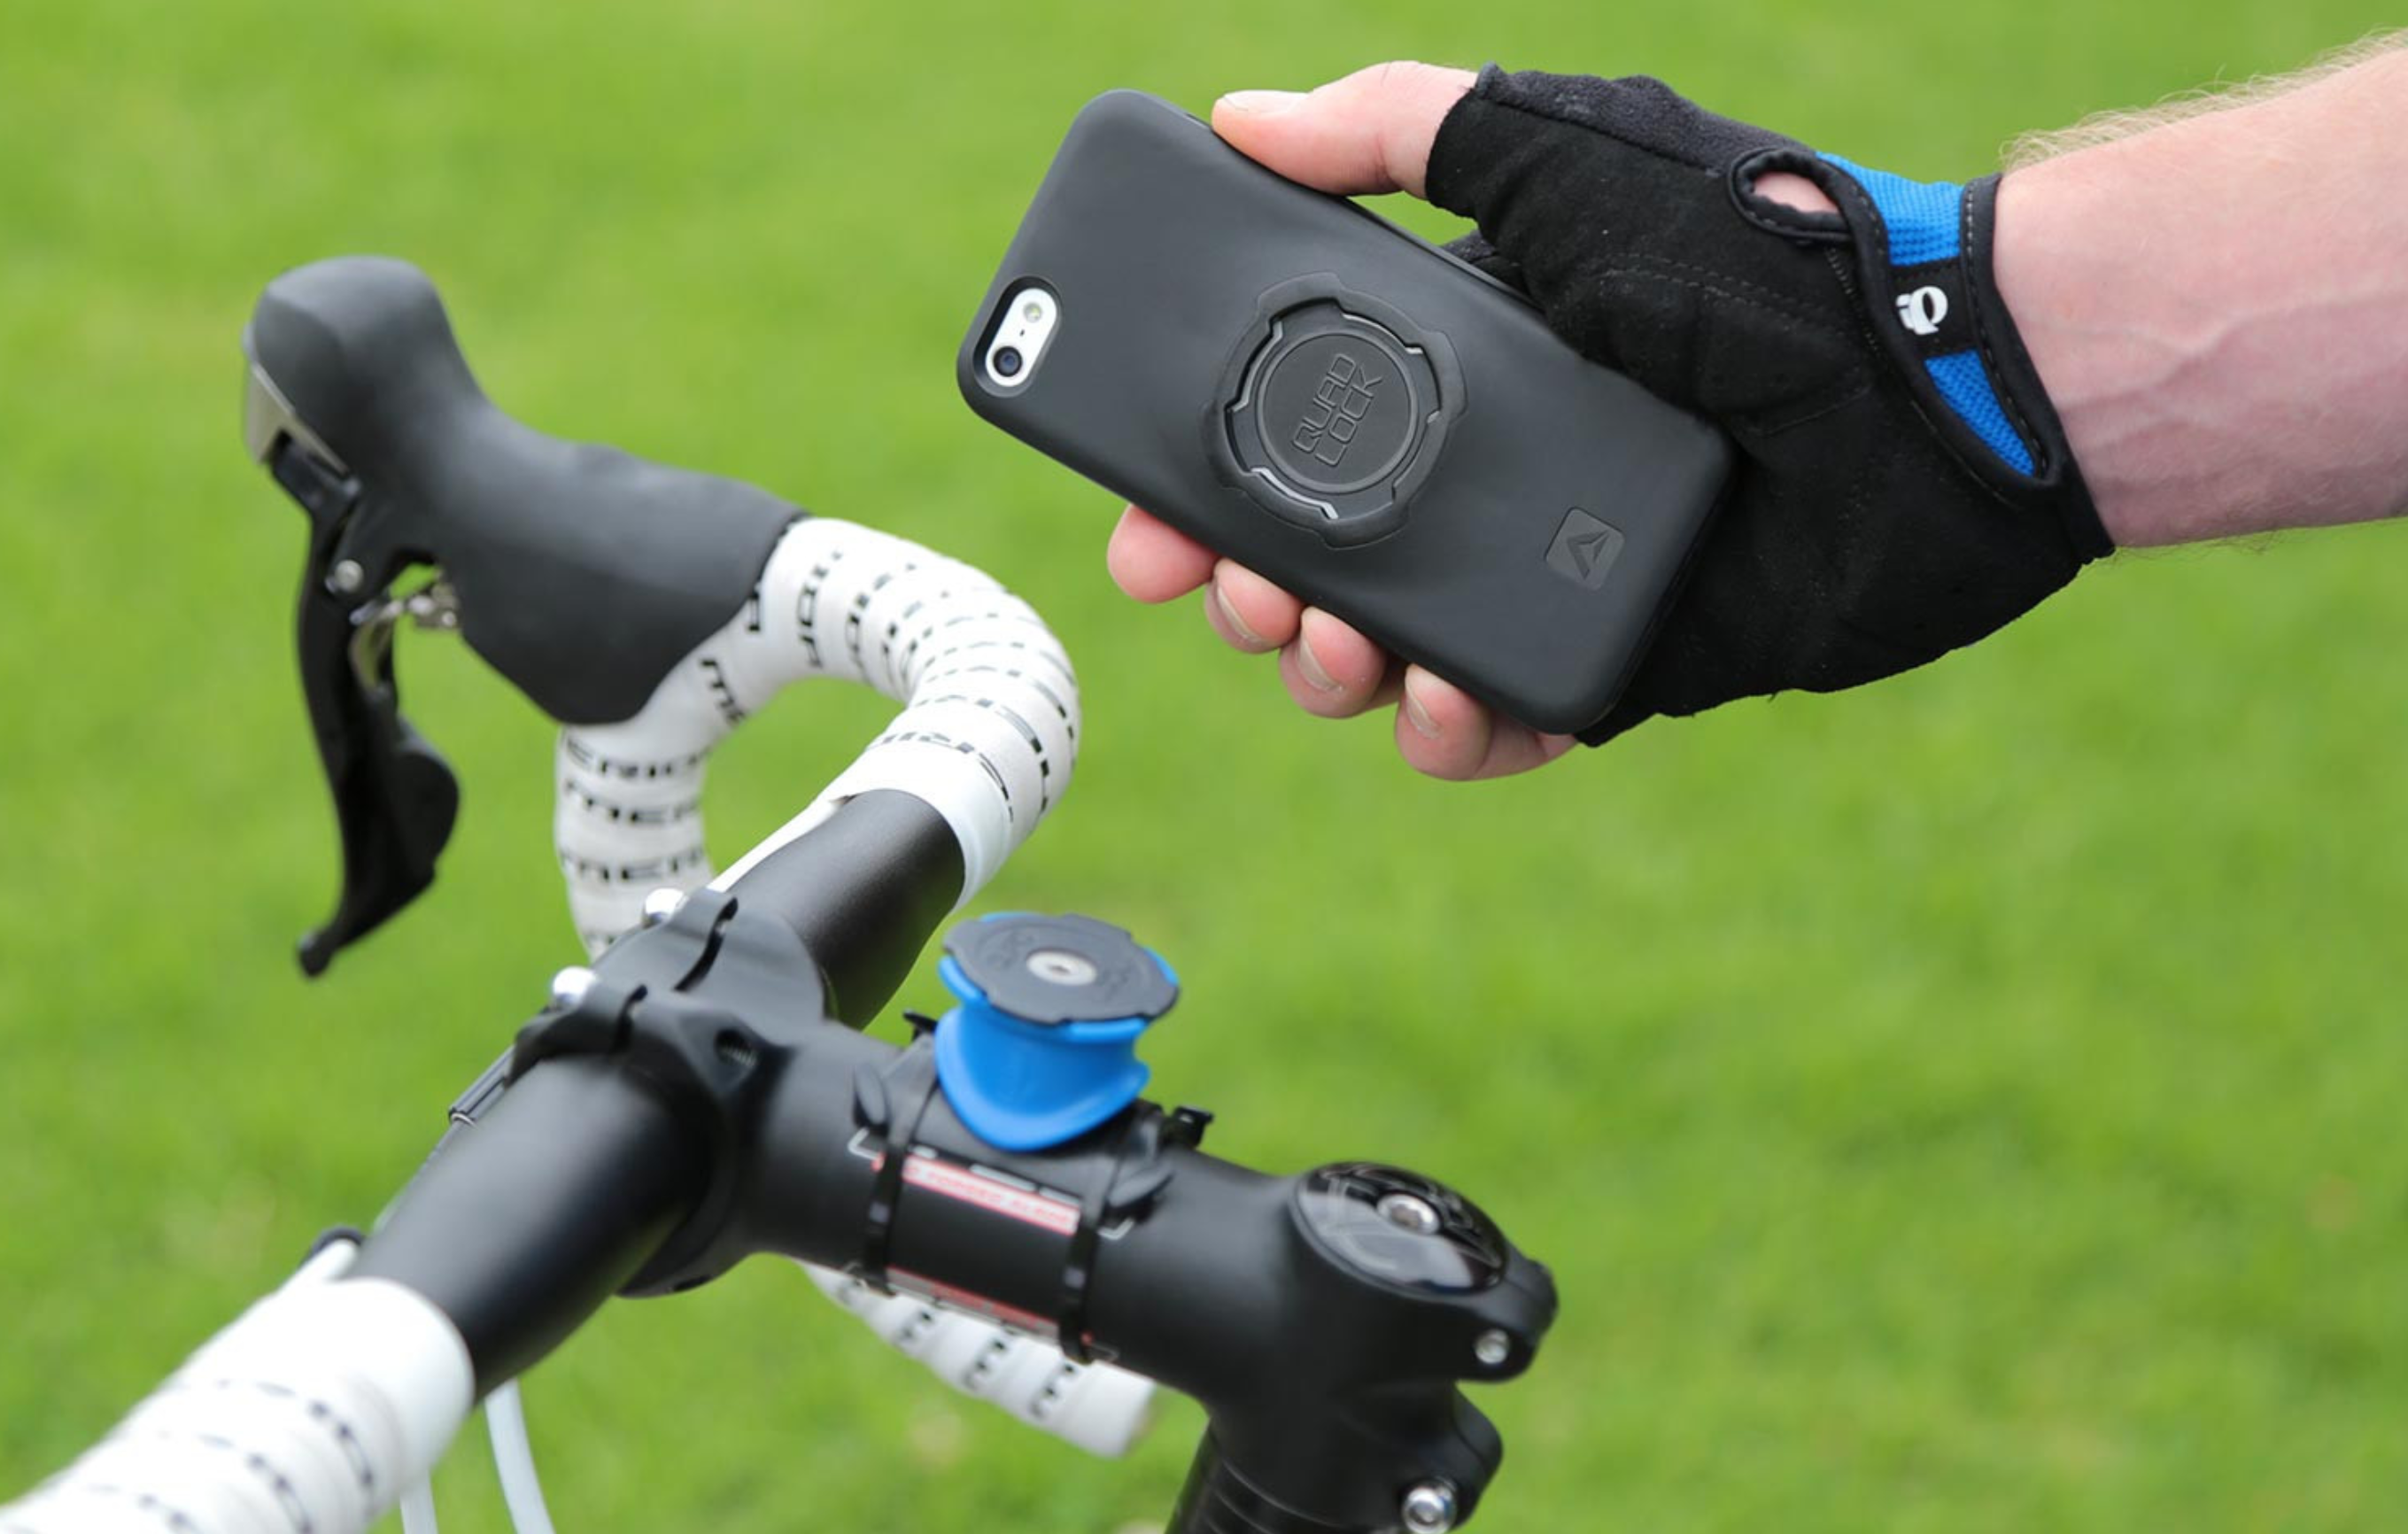 new product 74426 f4151 REVIEW: Quad Lock's iPhone X Bike Mount Offers A Worry-Free Ride ...